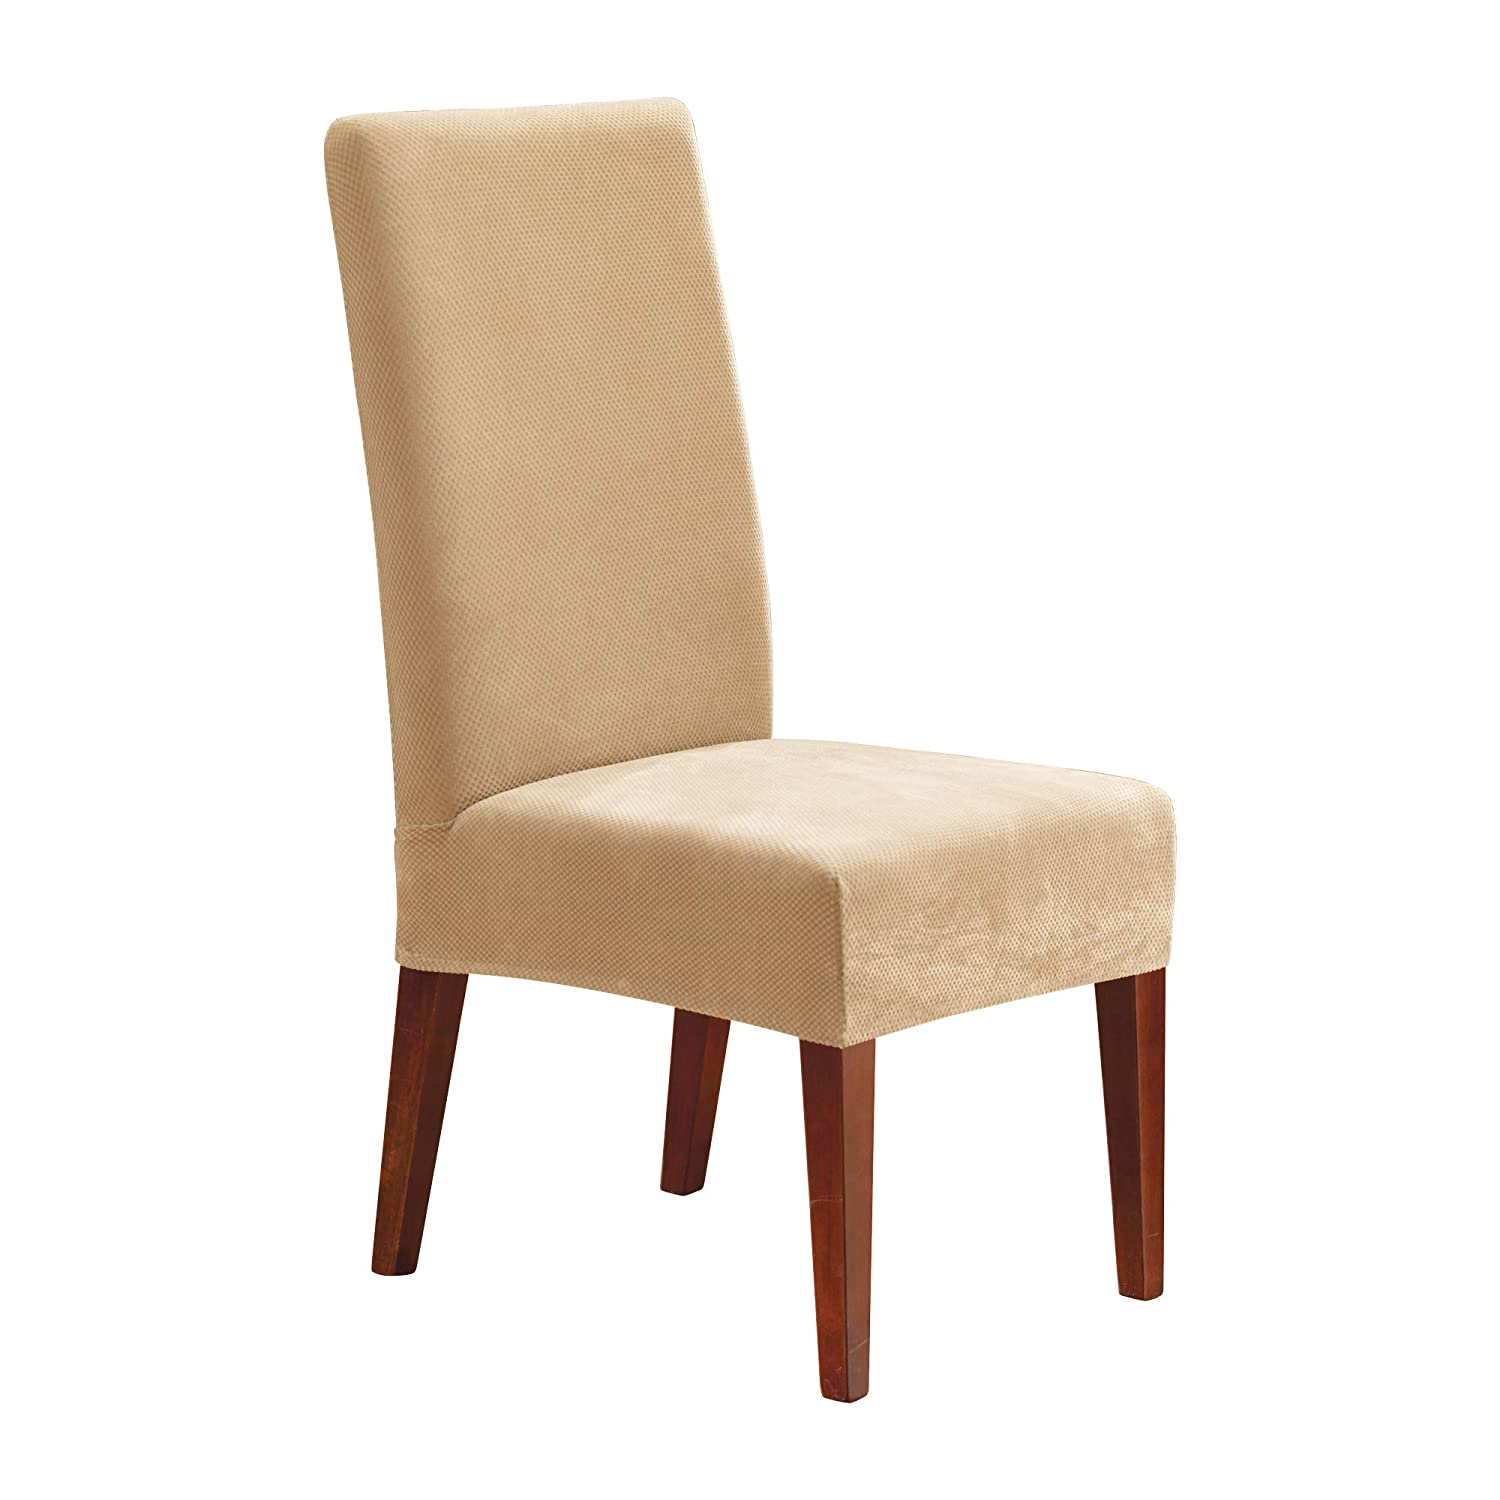 Remarkable Surefit Stretch Pique Shorty Dining Room Chair Slipcover Cream Sf38682 Forskolin Free Trial Chair Design Images Forskolin Free Trialorg